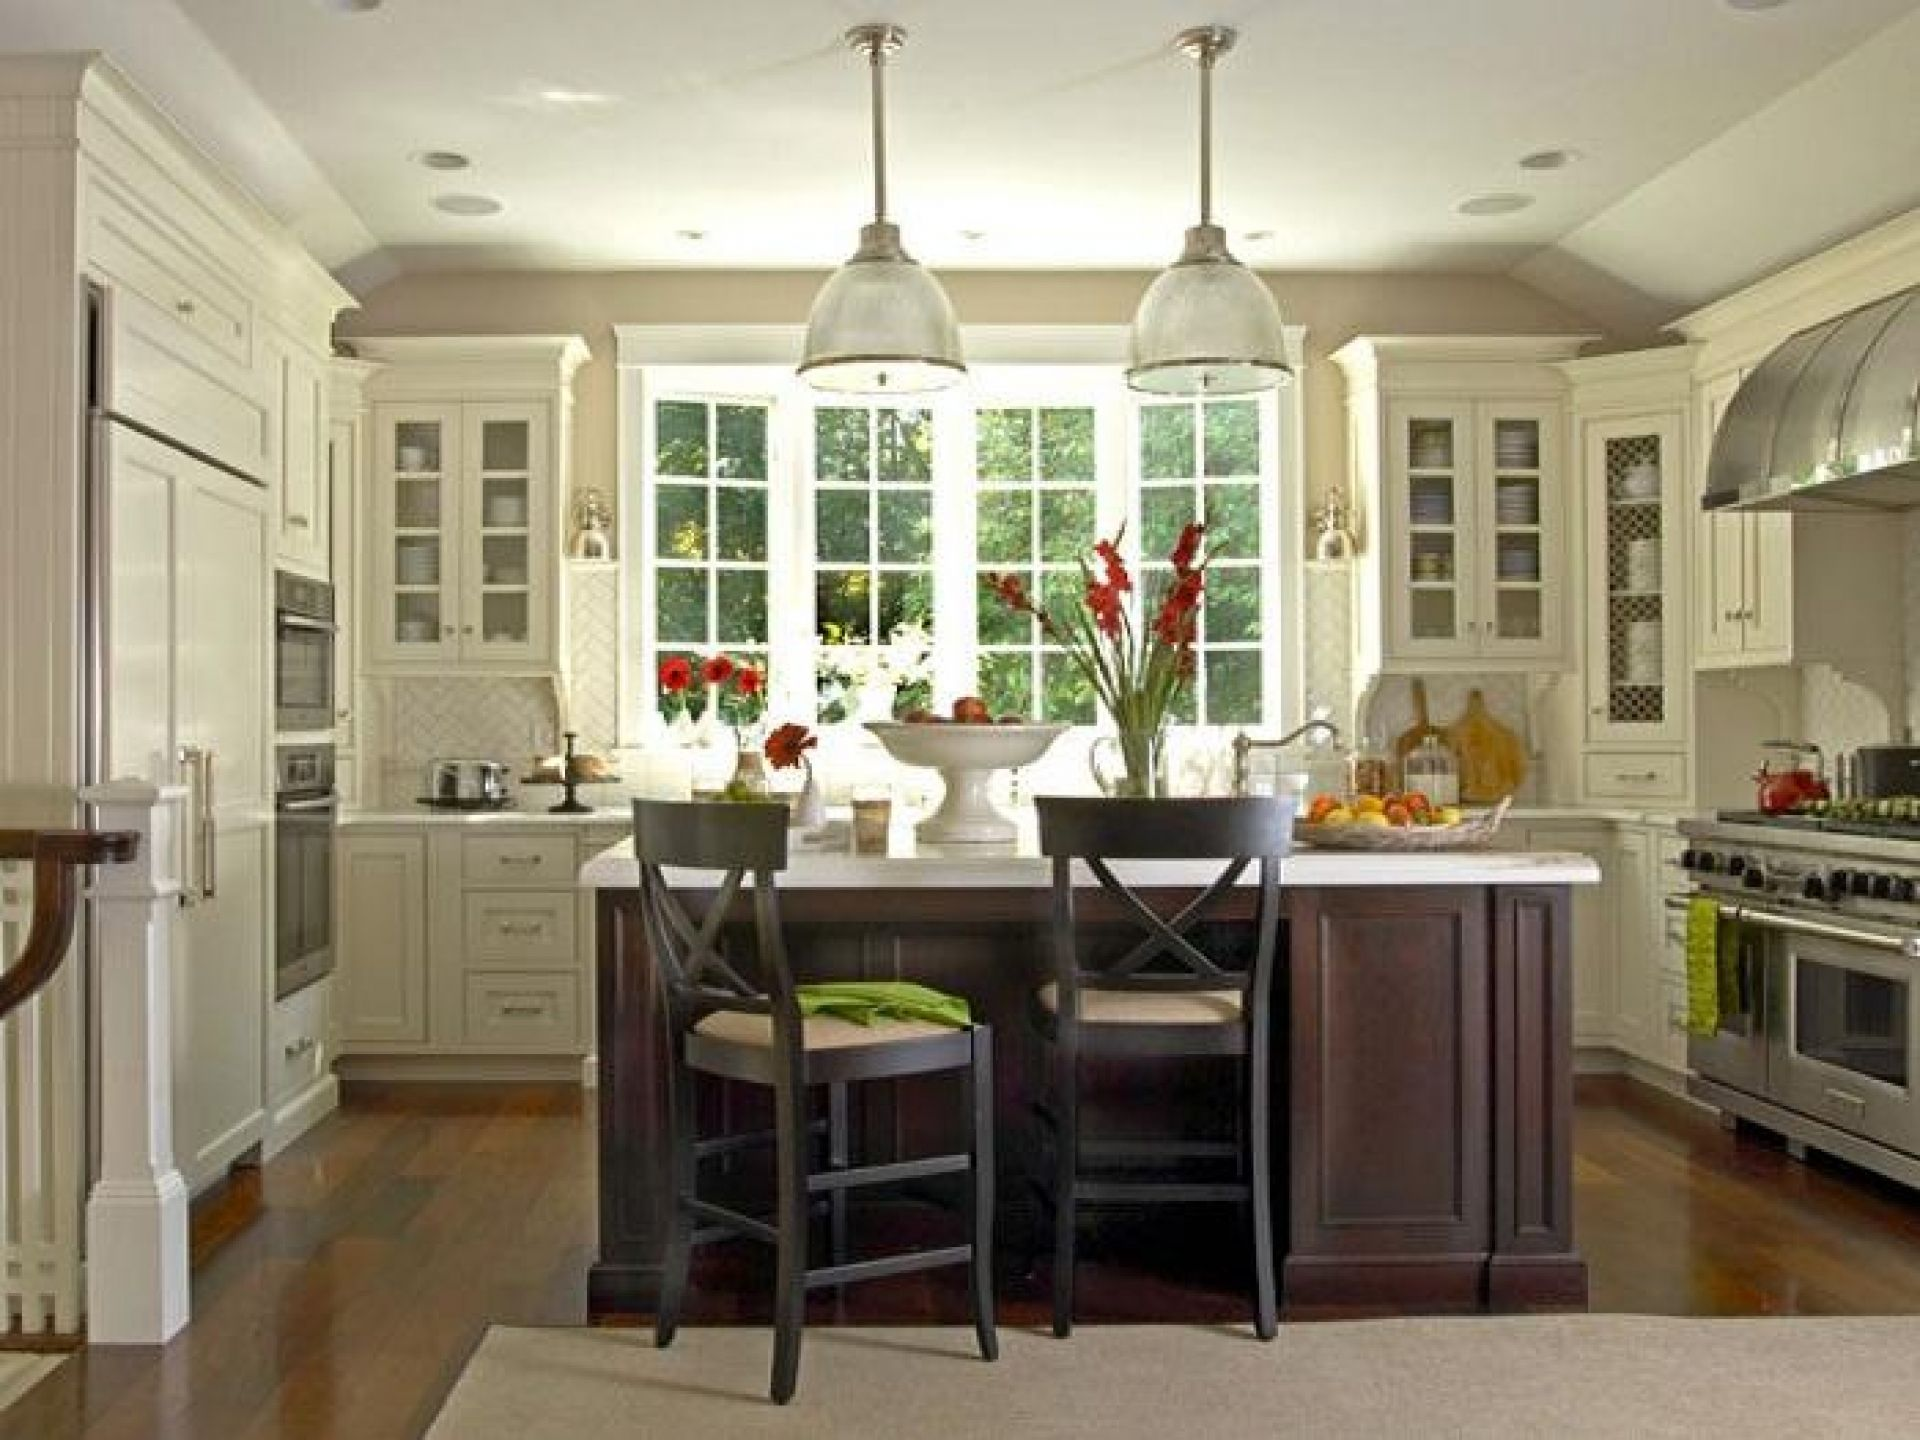 U Shaped Kitchen Island With Farmhouse Designs on two wall kitchen designs with island, light fixtures over kitchen island, 10x10 kitchen designs with island, corner kitchen designs with island, square kitchen designs with island, open kitchen designs with island, galley kitchen designs with island, one wall kitchen designs with island, g-shaped kitchen designs with island, long kitchen designs with island, kitchen design layout with island,